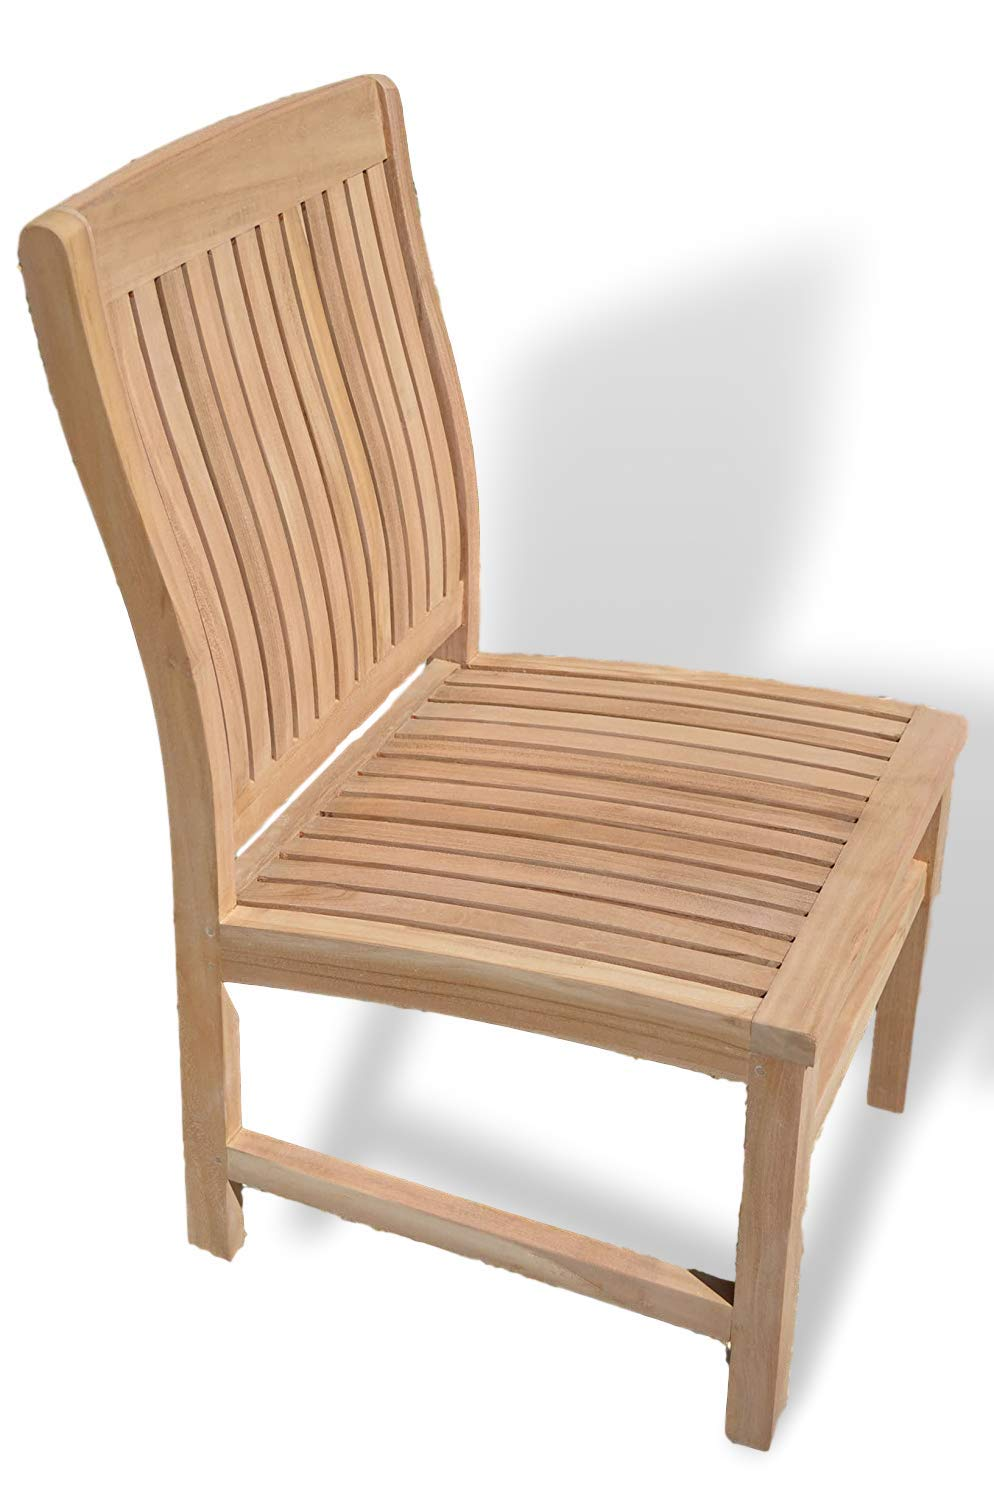 Marlborough - Solid Teak Fixed Chair - Contoured Back